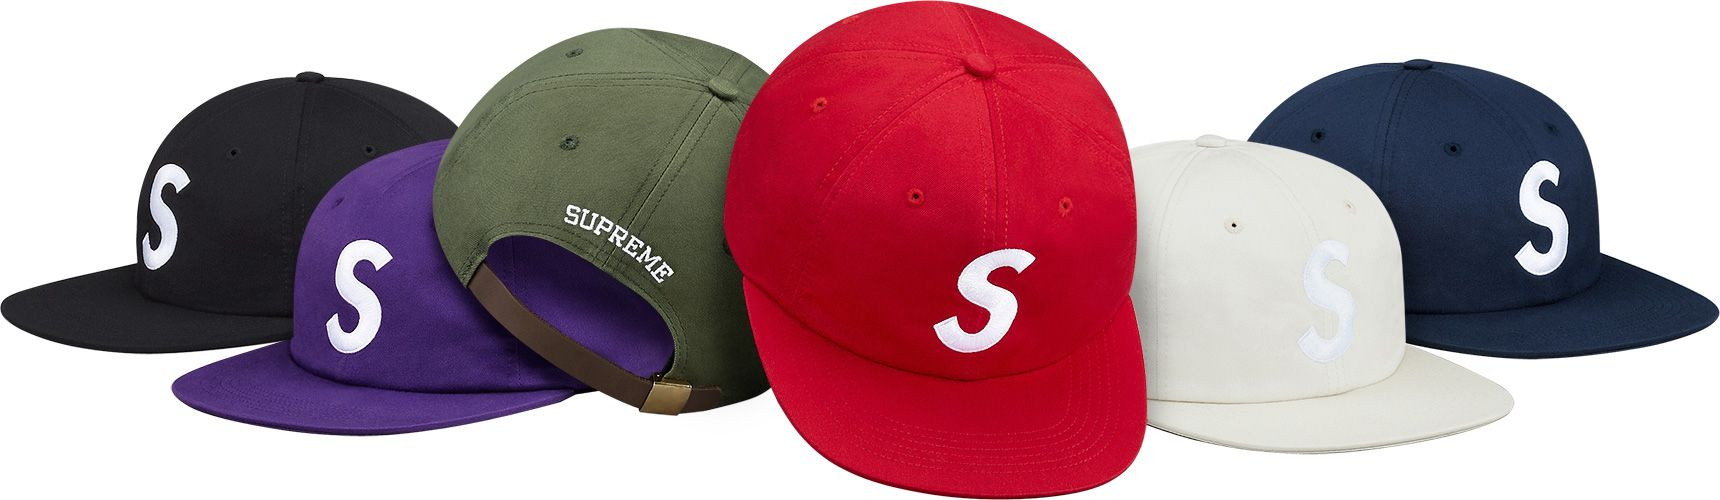 S logo 6-panel. Any colour except purple if possible. Will only be able to  buy on ebay for exhorbant prices so probs avoid this one but it s the type  of hat ... d79aefa850f